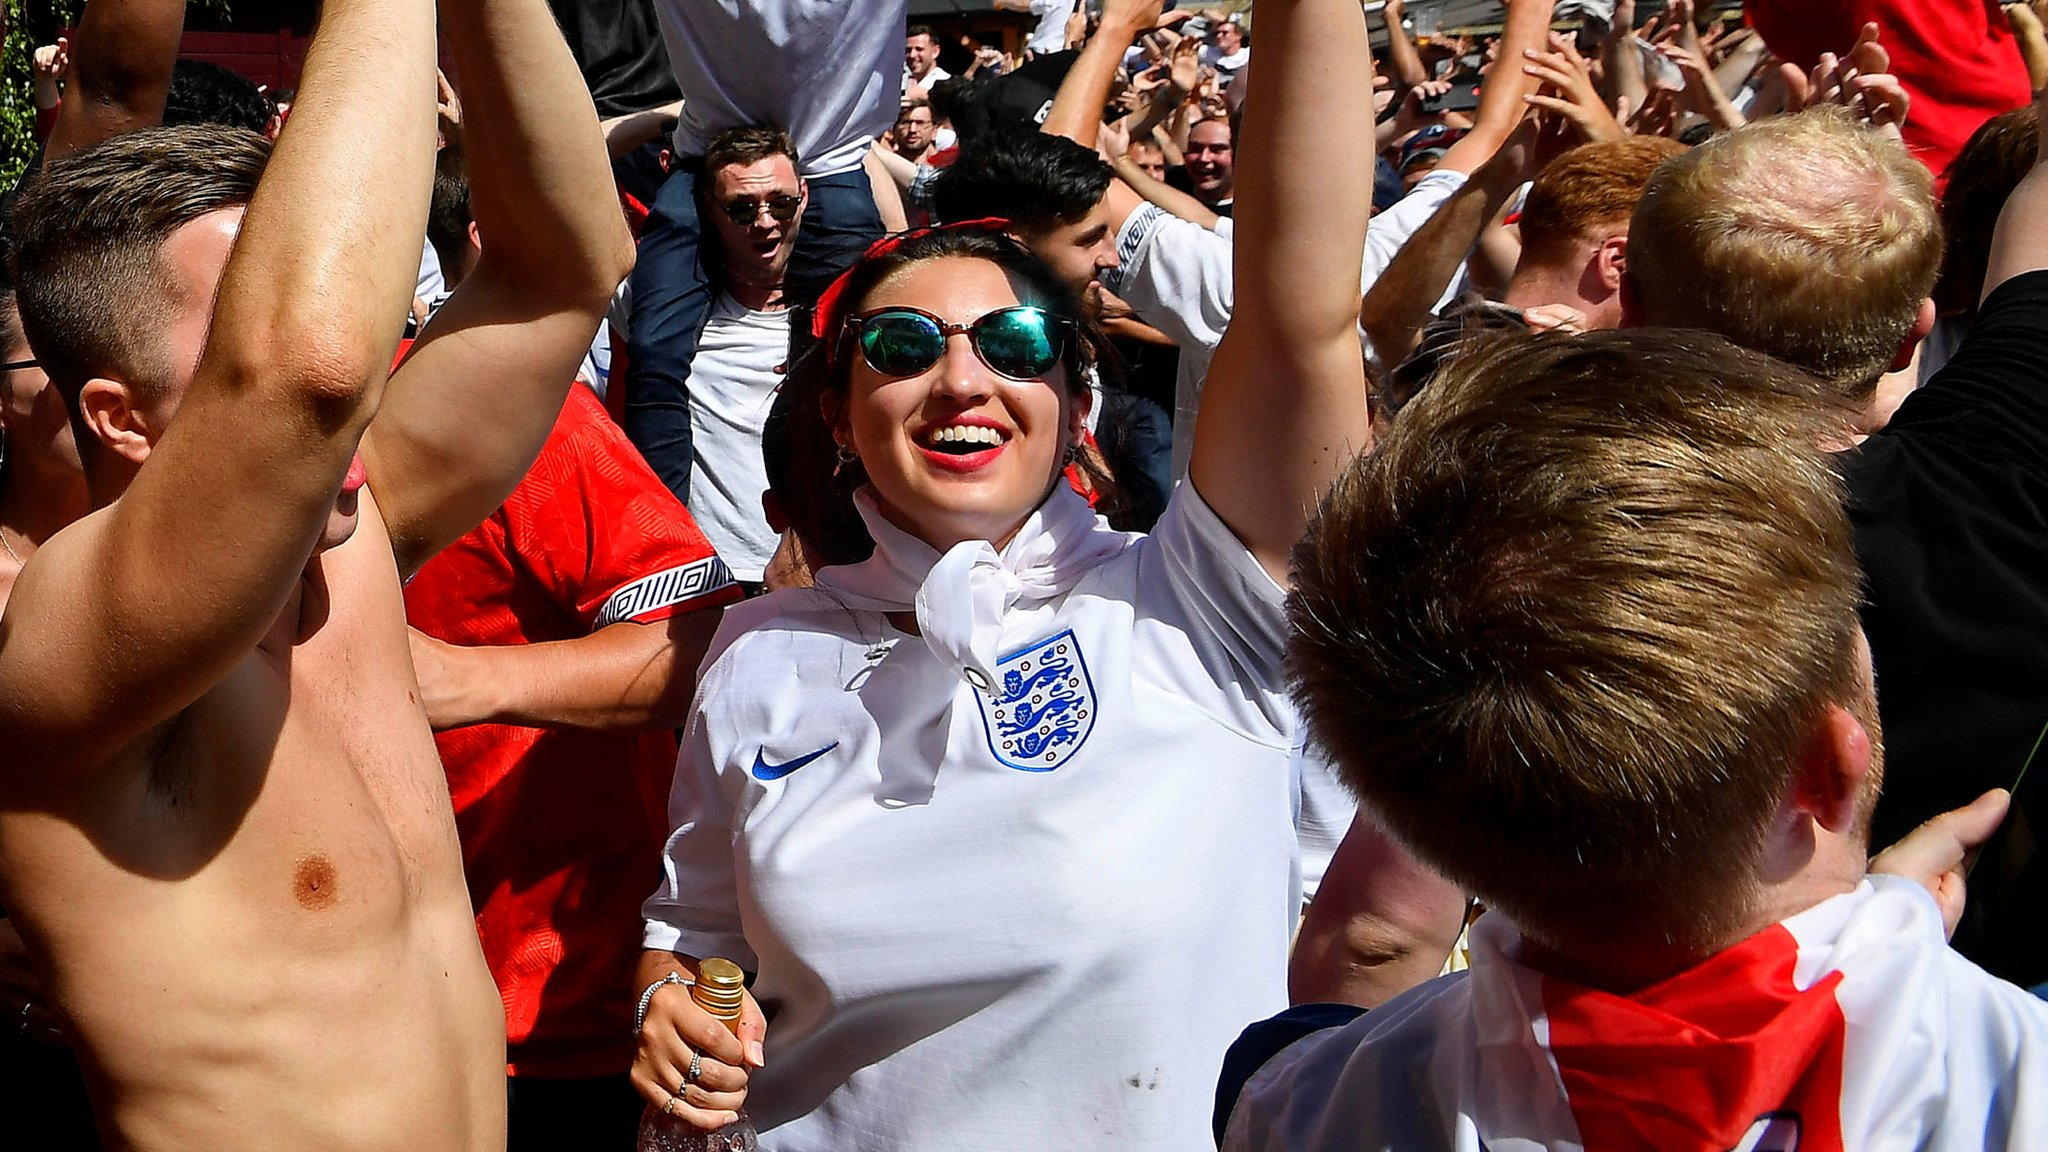 'This is getting silly' - England match in tweets